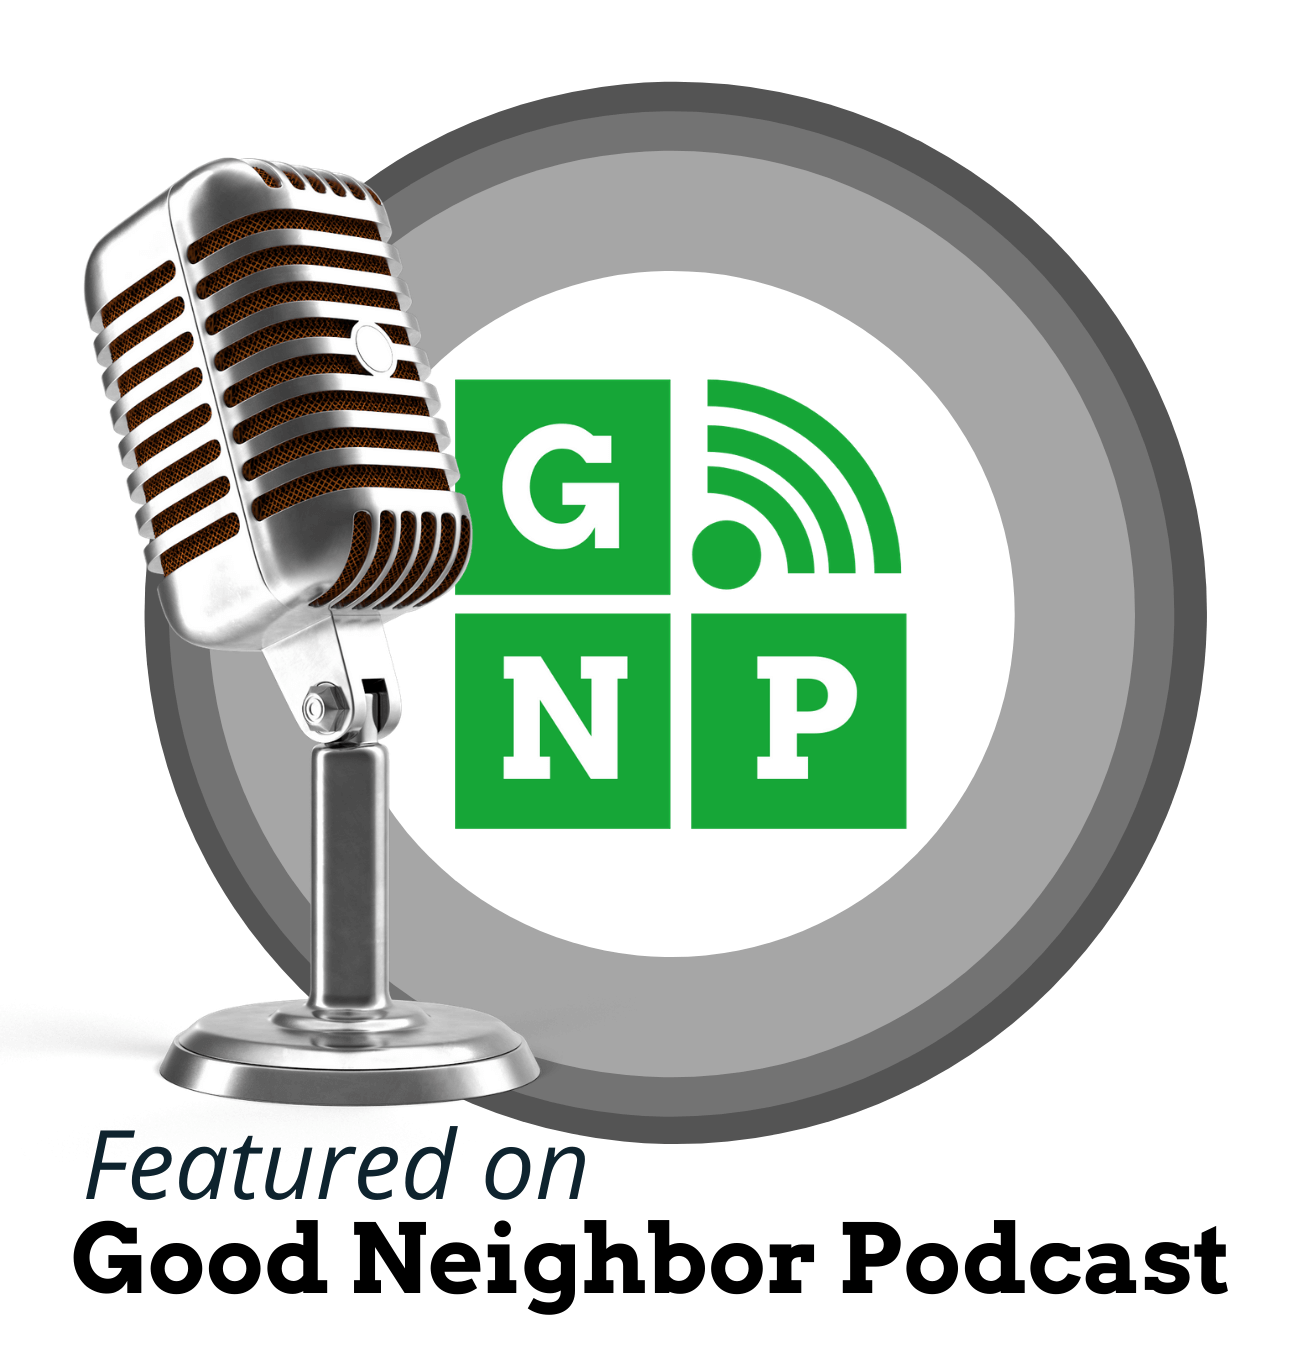 Image of microphone and Good Neighbor Podcast logo